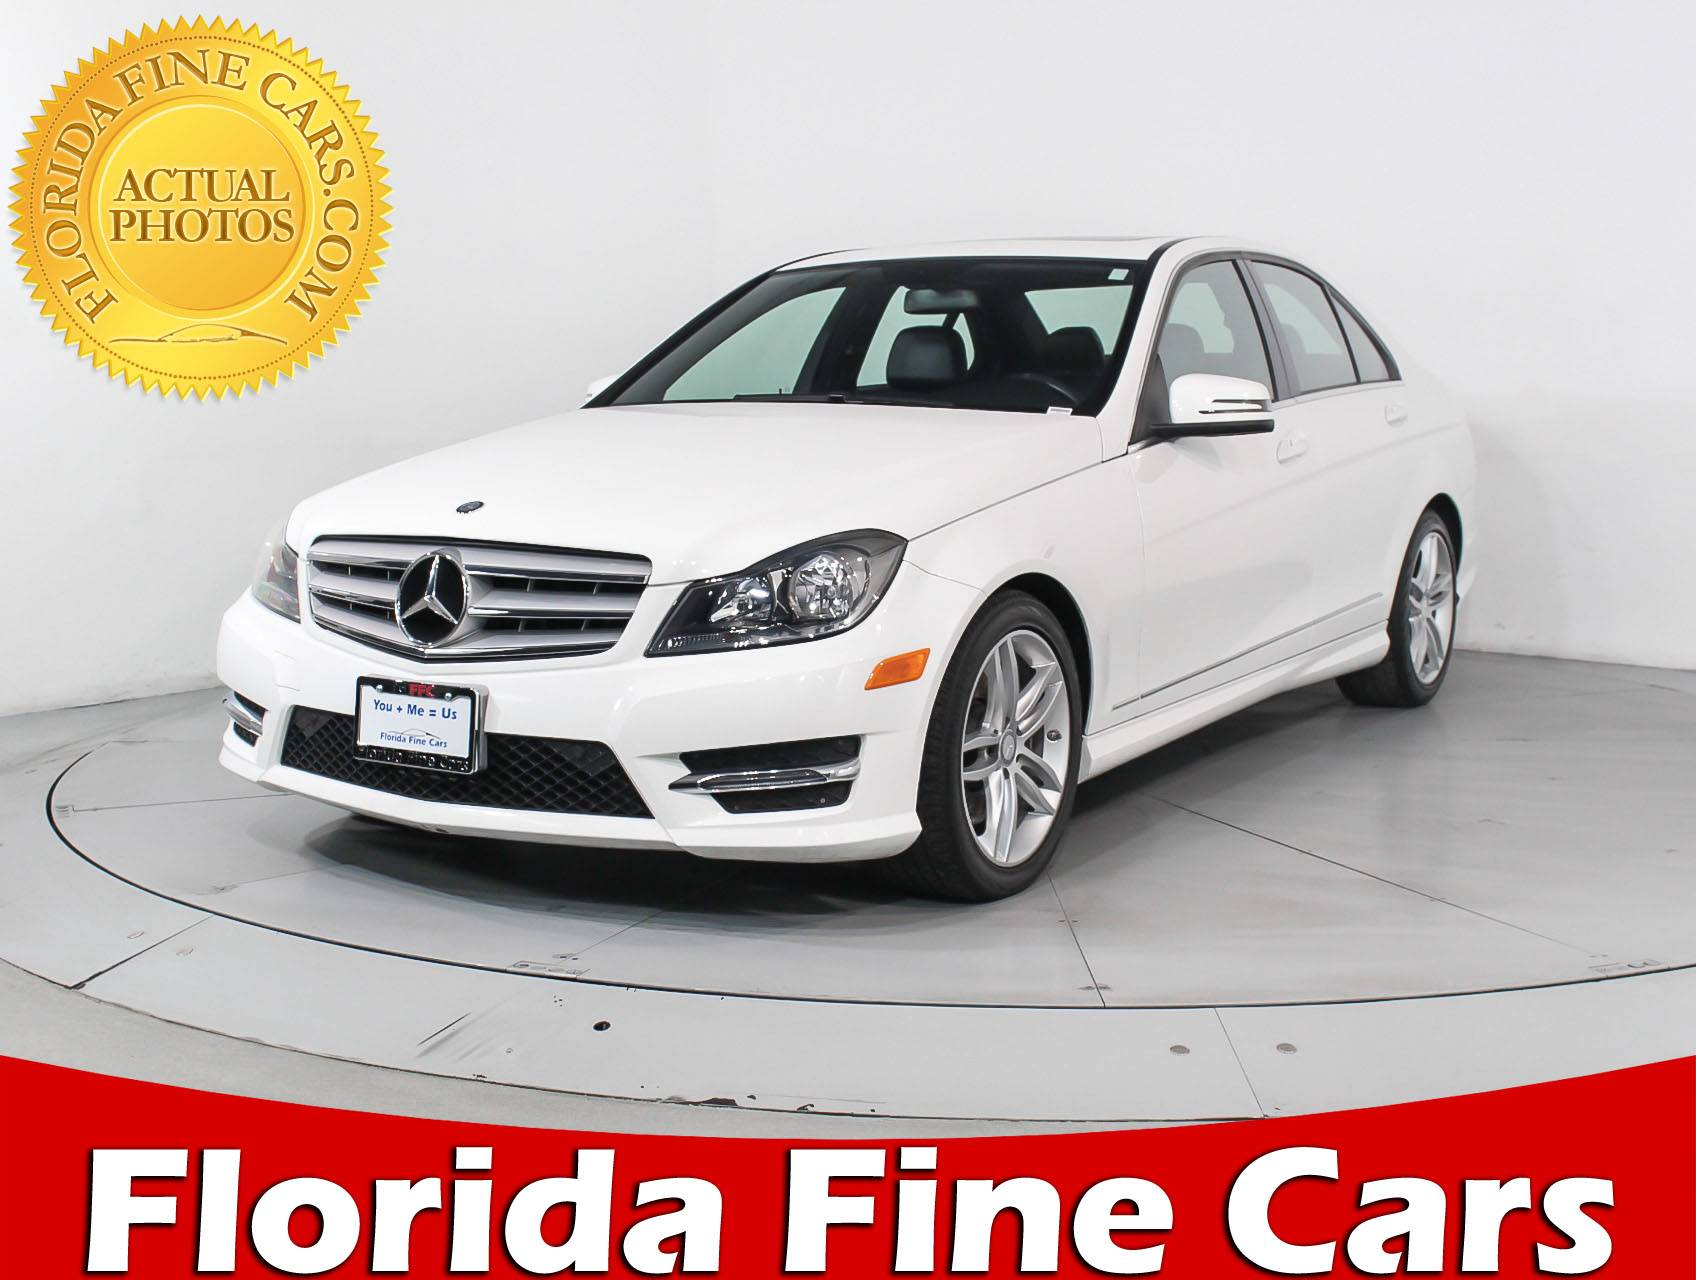 Used 2013 MERCEDES BENZ C CLASS C300 4MATIC Sedan for sale in MIAMI